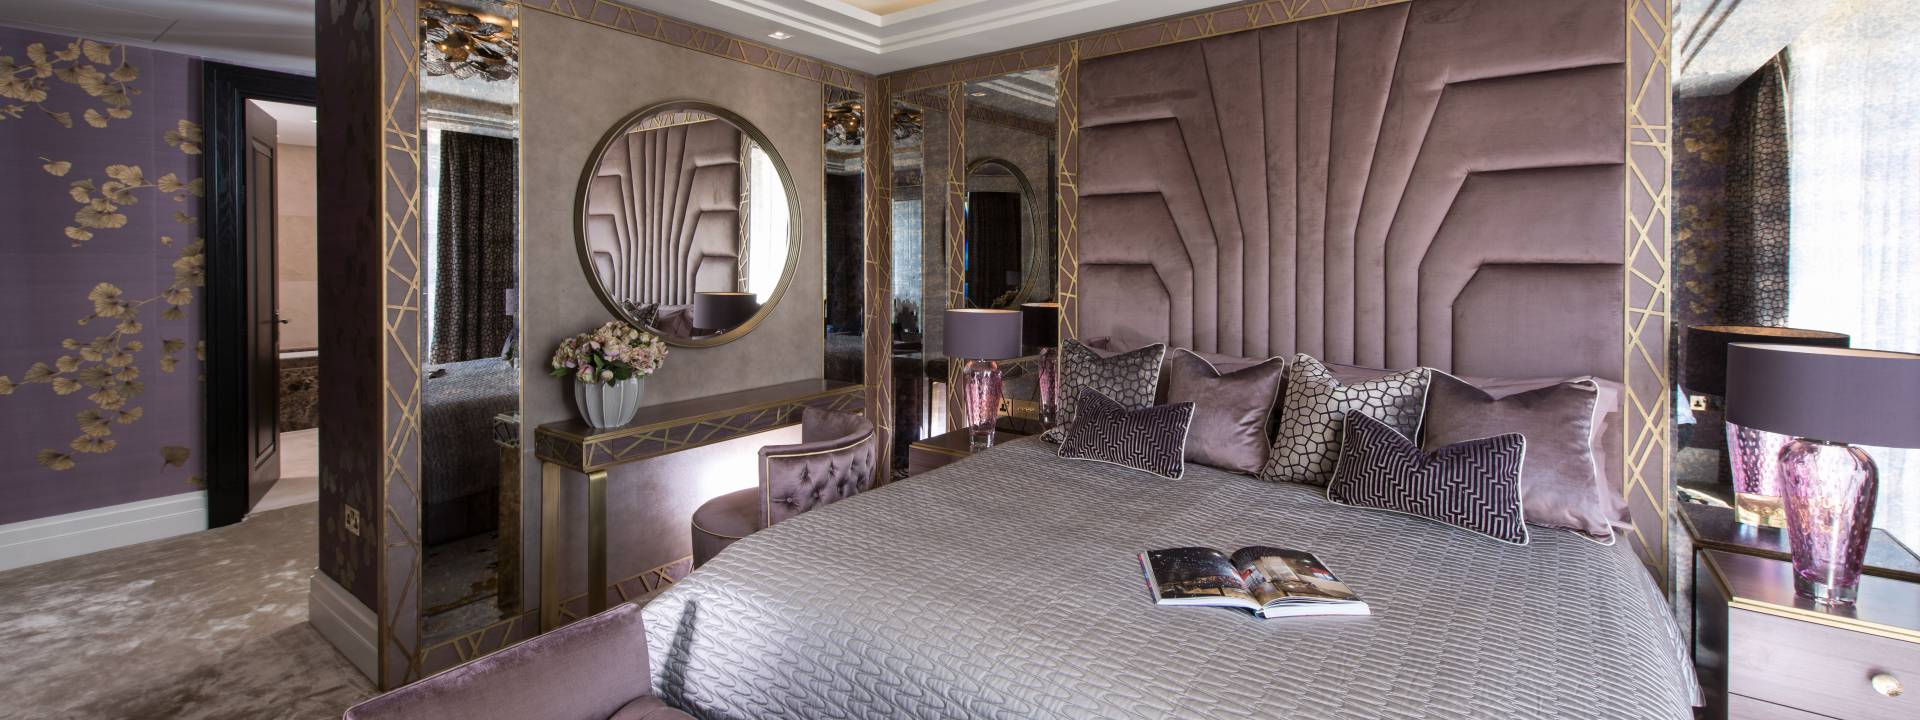 Art Deco Bedroom designed by Yvette Taylor London